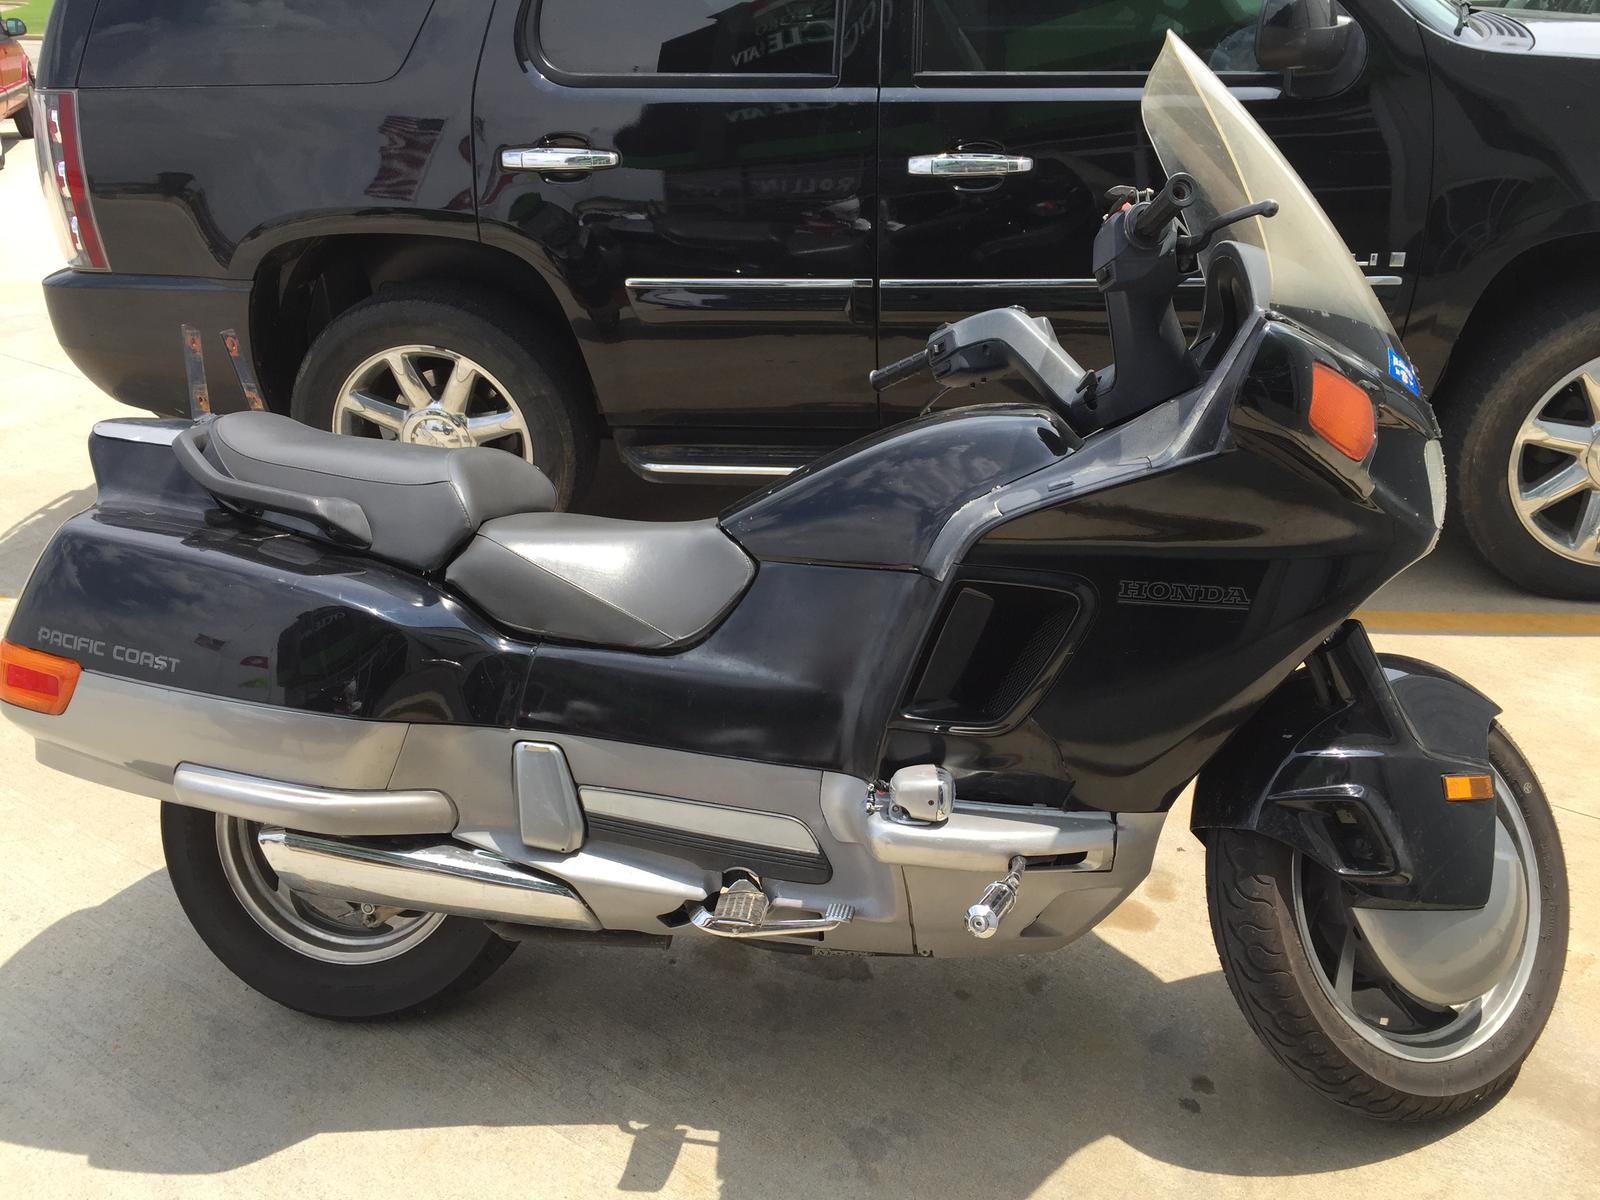 Honda Pacific Coast >> 1995 Honda Pacific Coast Motorcycle From Jonesboro Ar Today